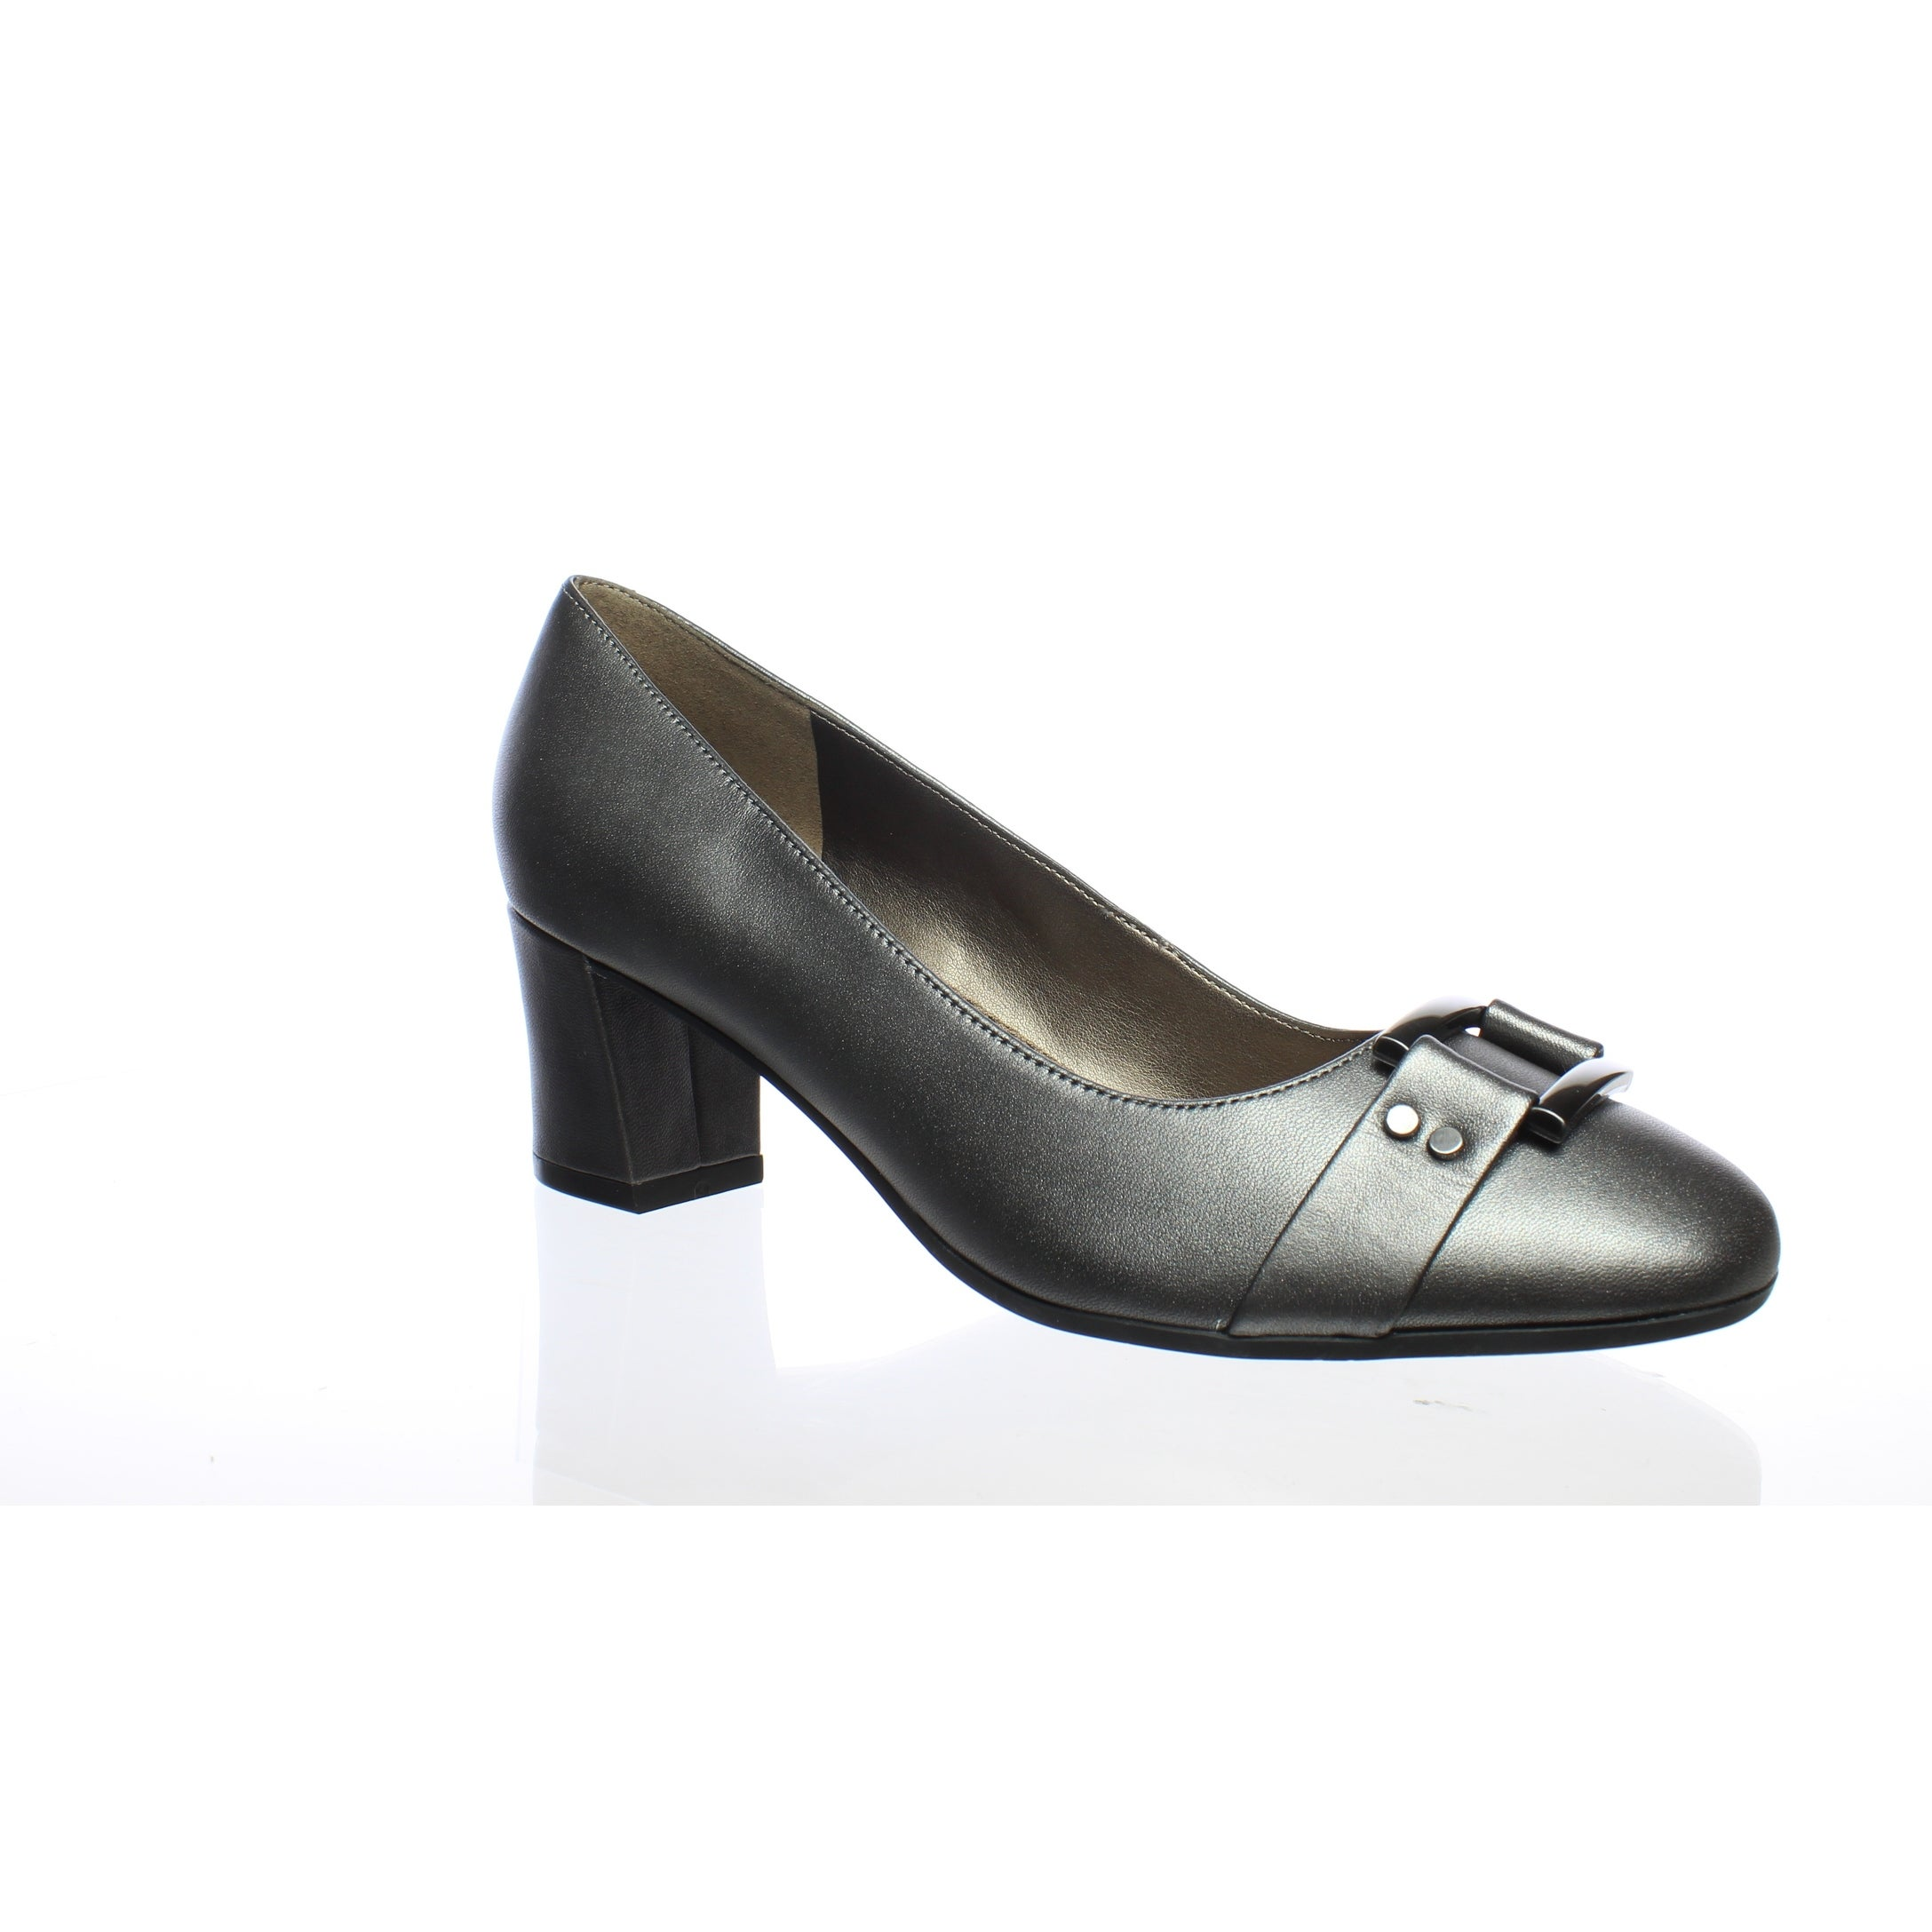 ccb11ae7aa1 Easy Spirit Womens Roldana Pewter Leather Pumps Size 7 (C,D,W)